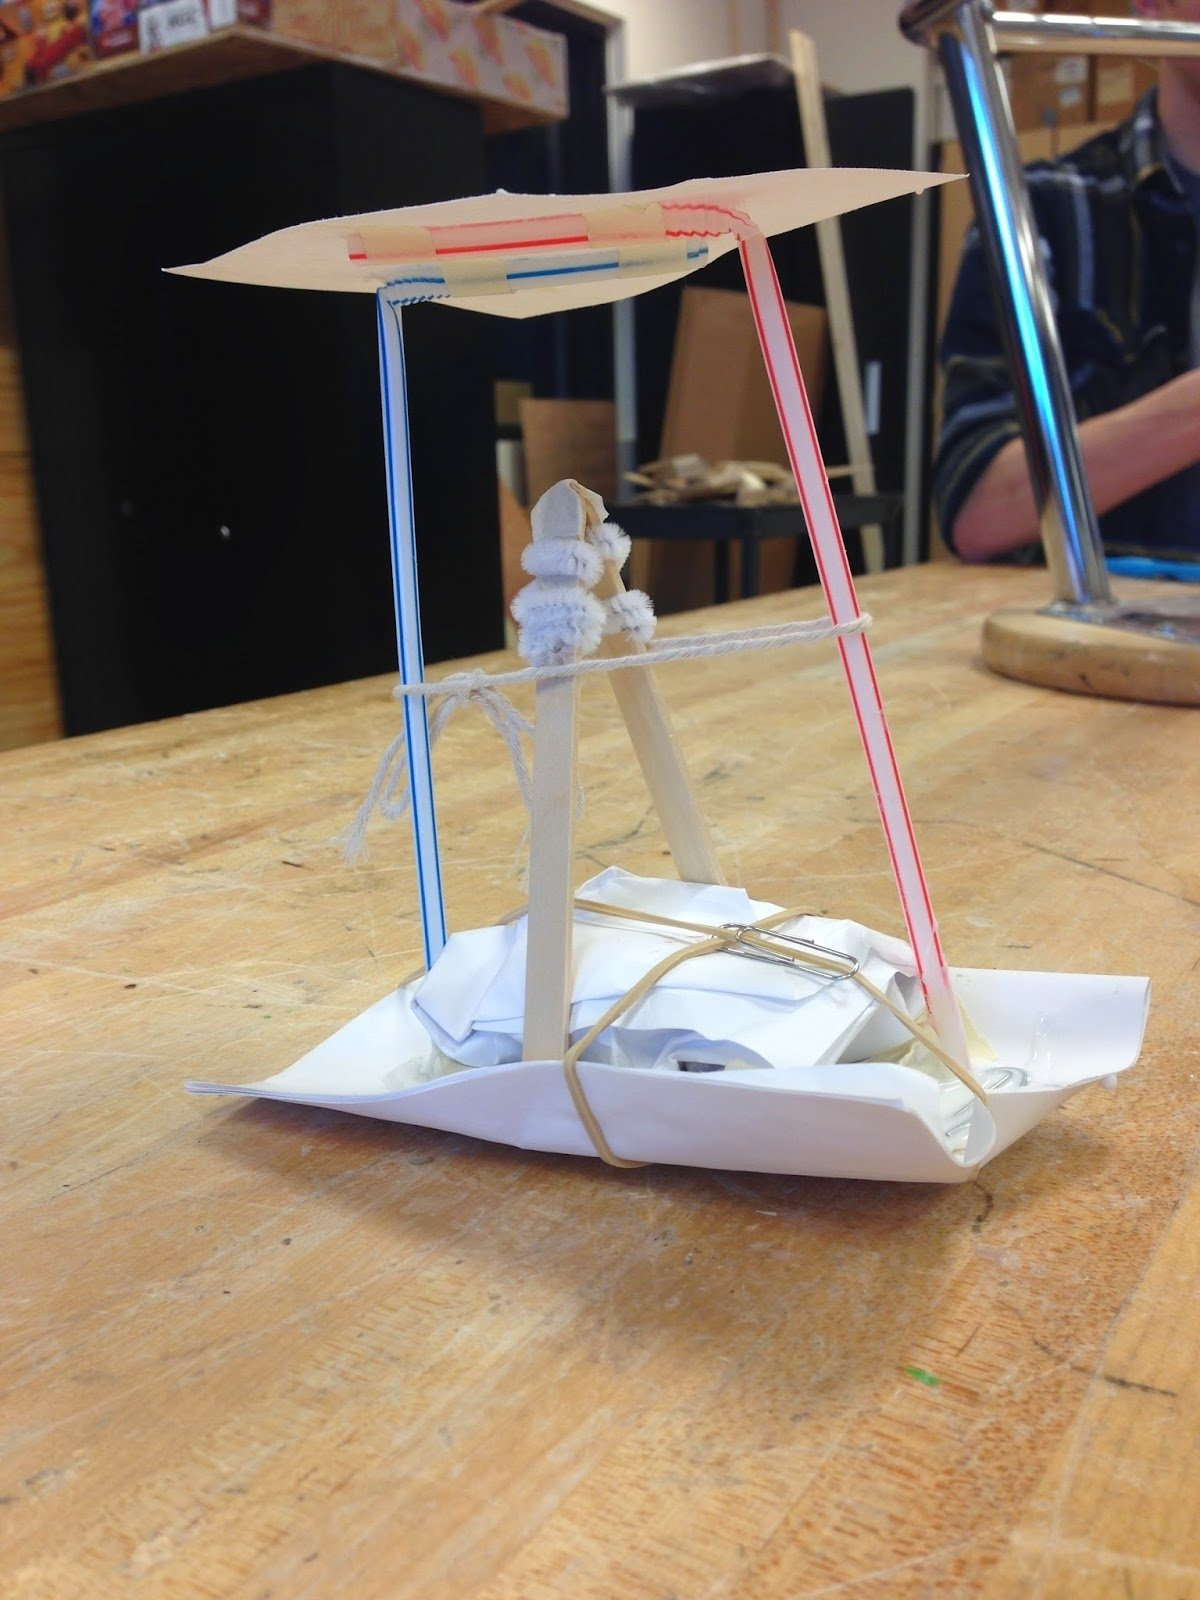 10 Trendy Egg Drop Project Ideas That Work alex calder intro to technology the egg drop project 2020